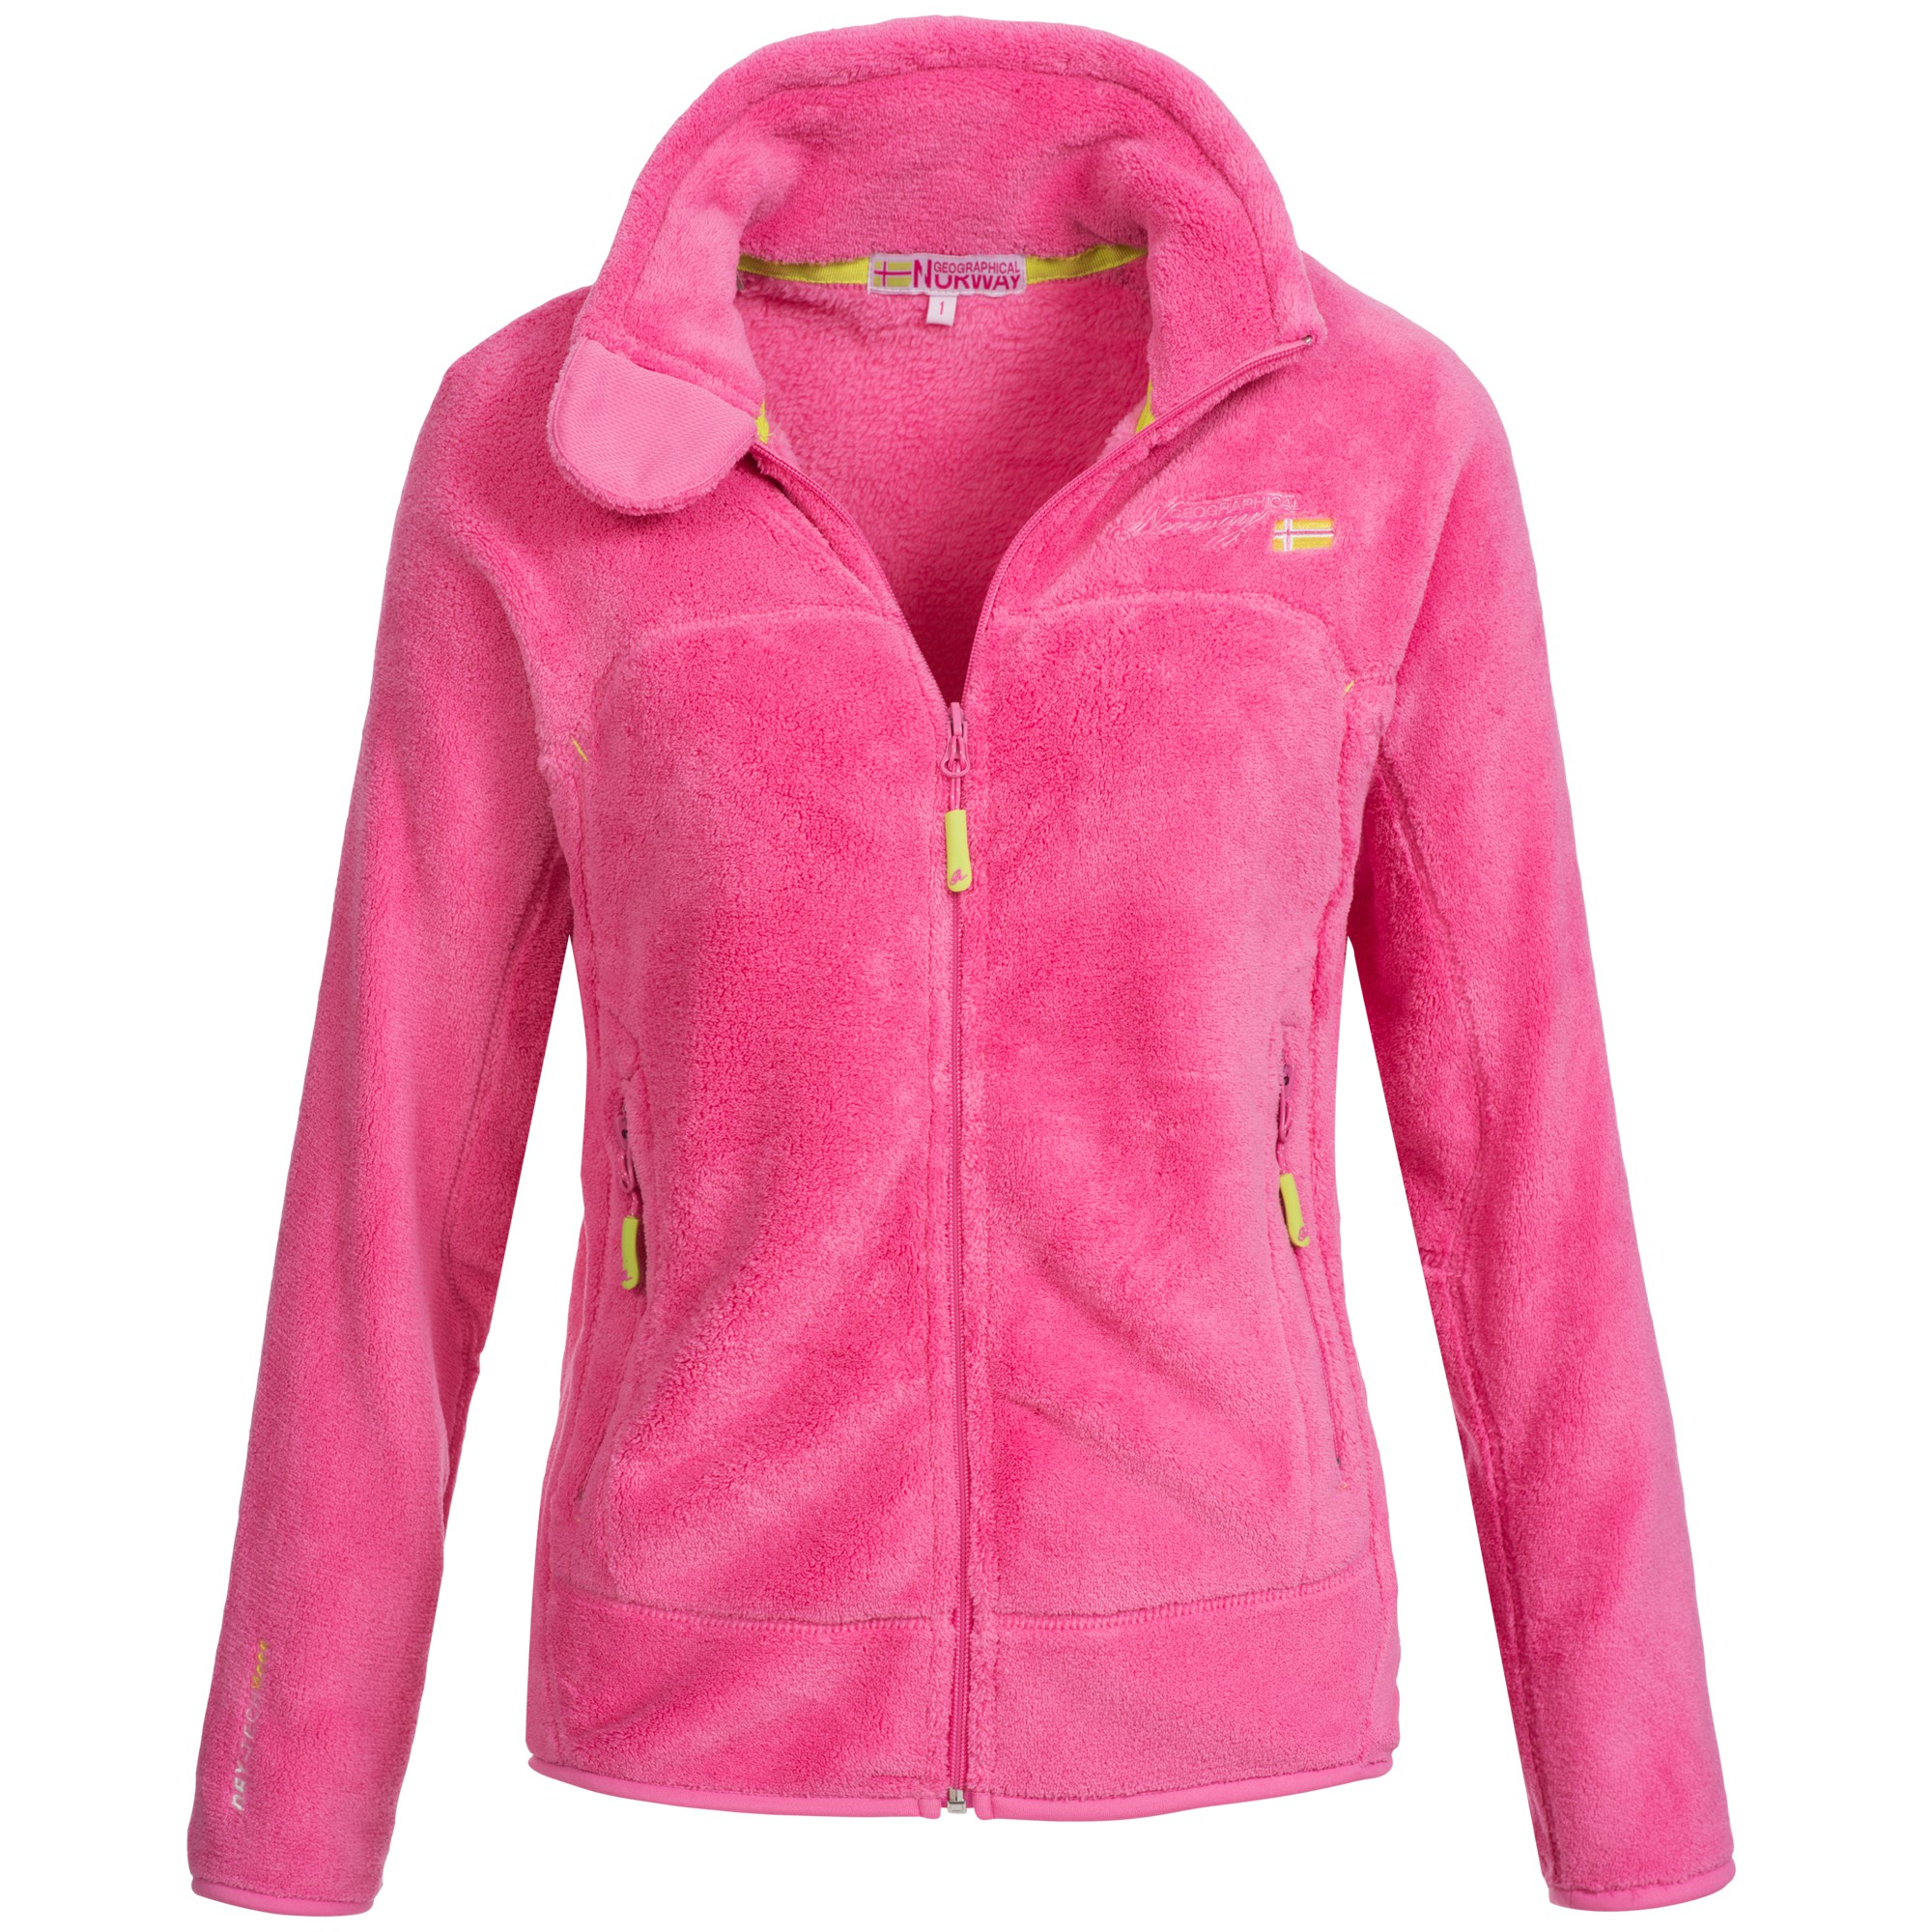 geographical norway ursula damen fleecejacke fleece jacke. Black Bedroom Furniture Sets. Home Design Ideas